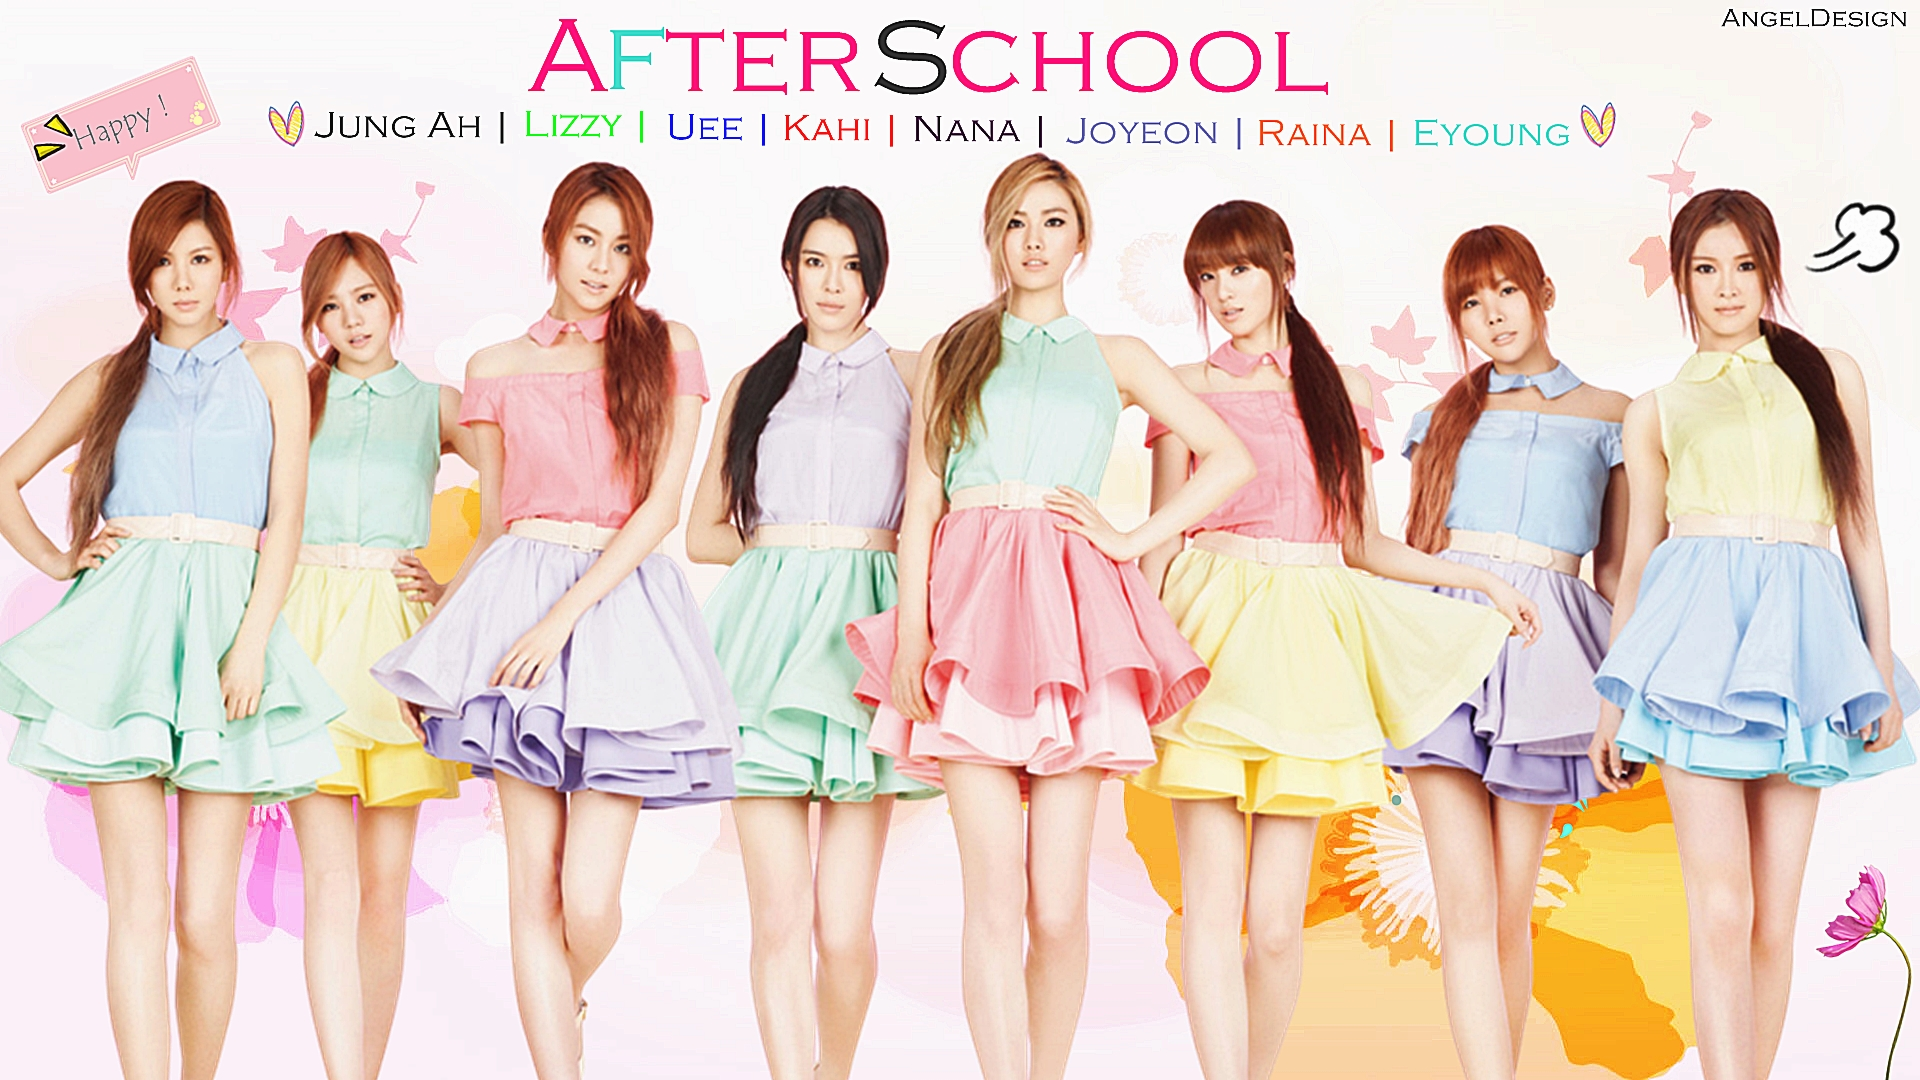 After School Profile   KPop Music 1920x1080